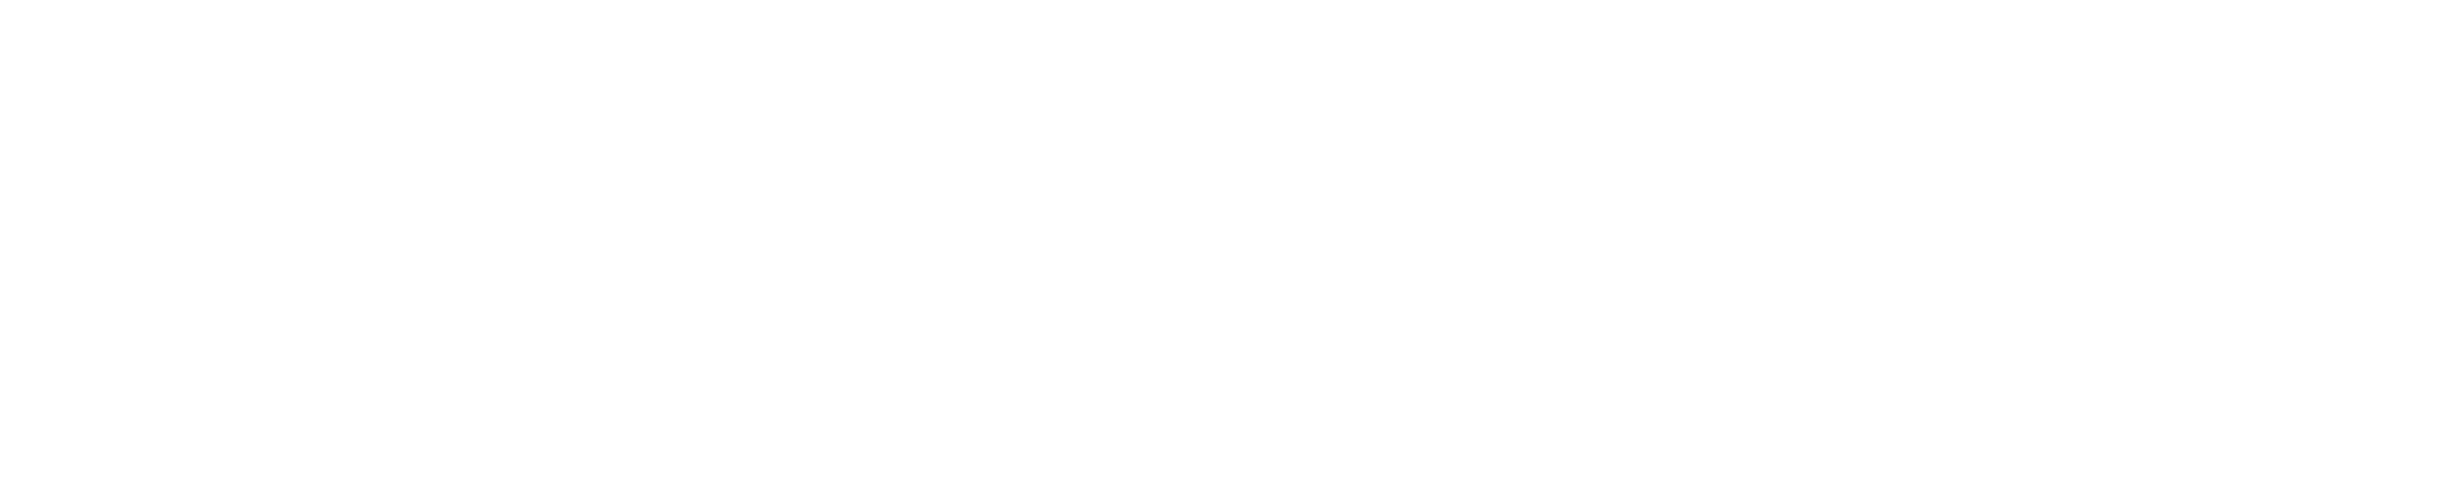 Sony logo PNG images free download.